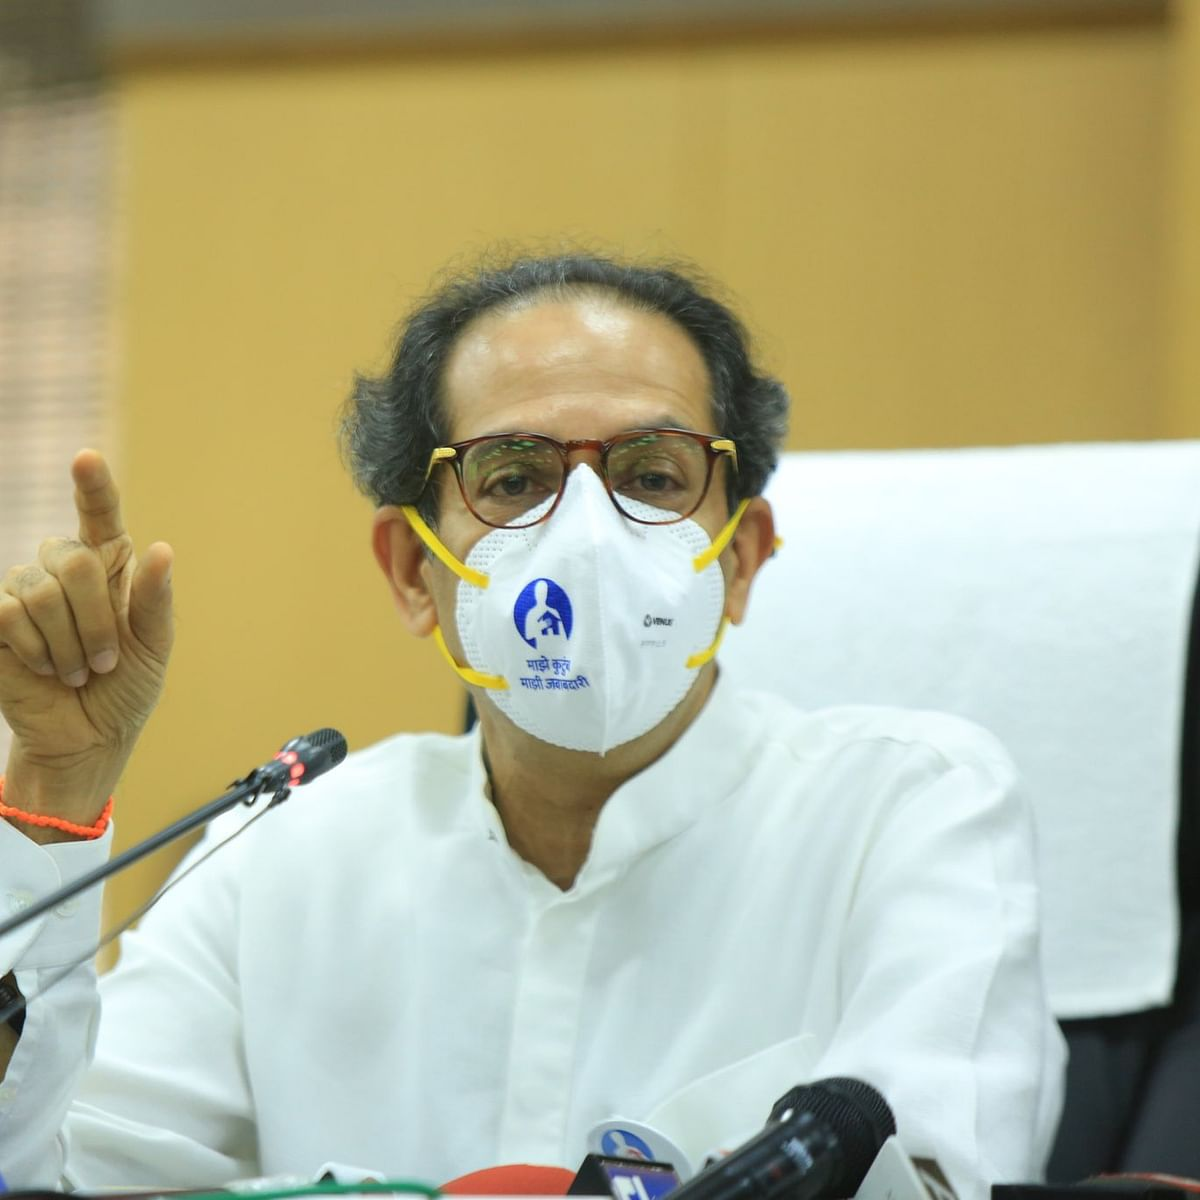 COVID-19: Section 144 imposed in Maharashtra till May 1; CM Uddhav Thackeray announces Rs 5,400 crore package